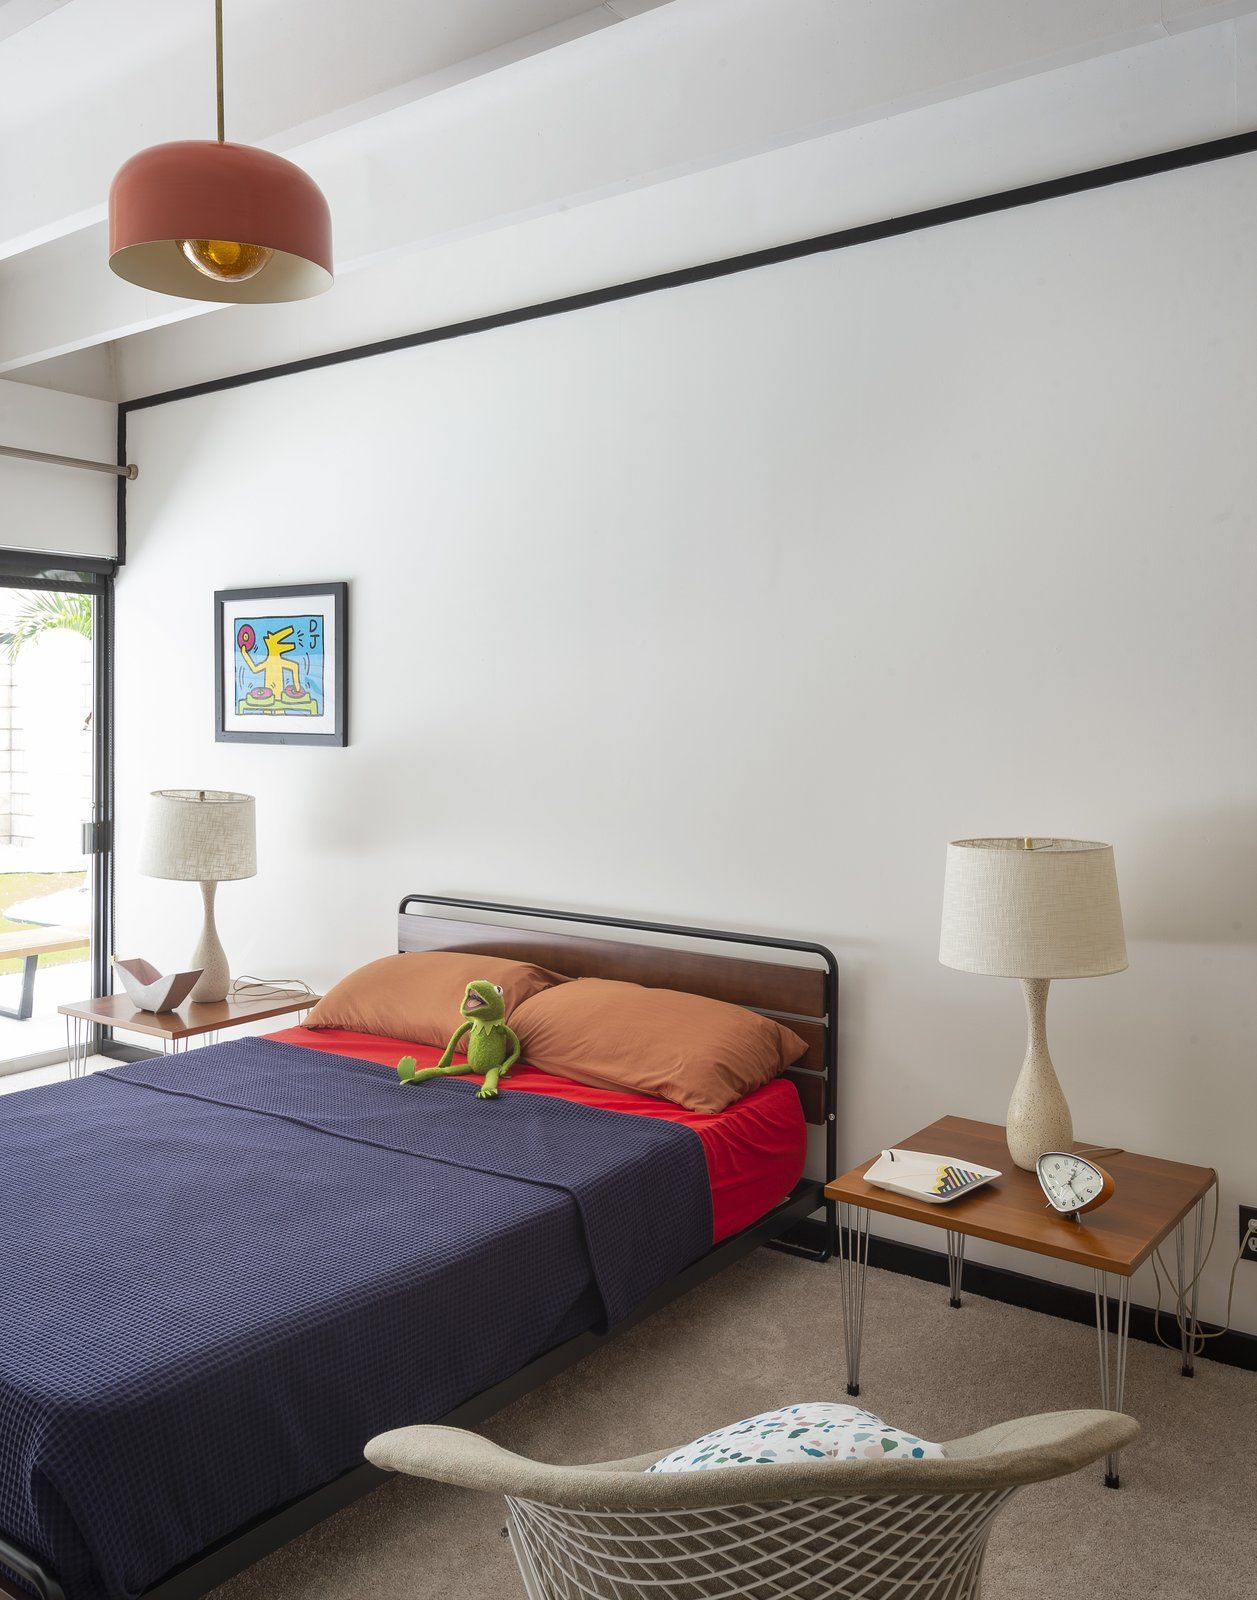 Bedroom Night Stands Chair Carpet Floor Bed And Ceiling Lighting A Diamond By Harry Bertoia For Knoll Sits In The Guest